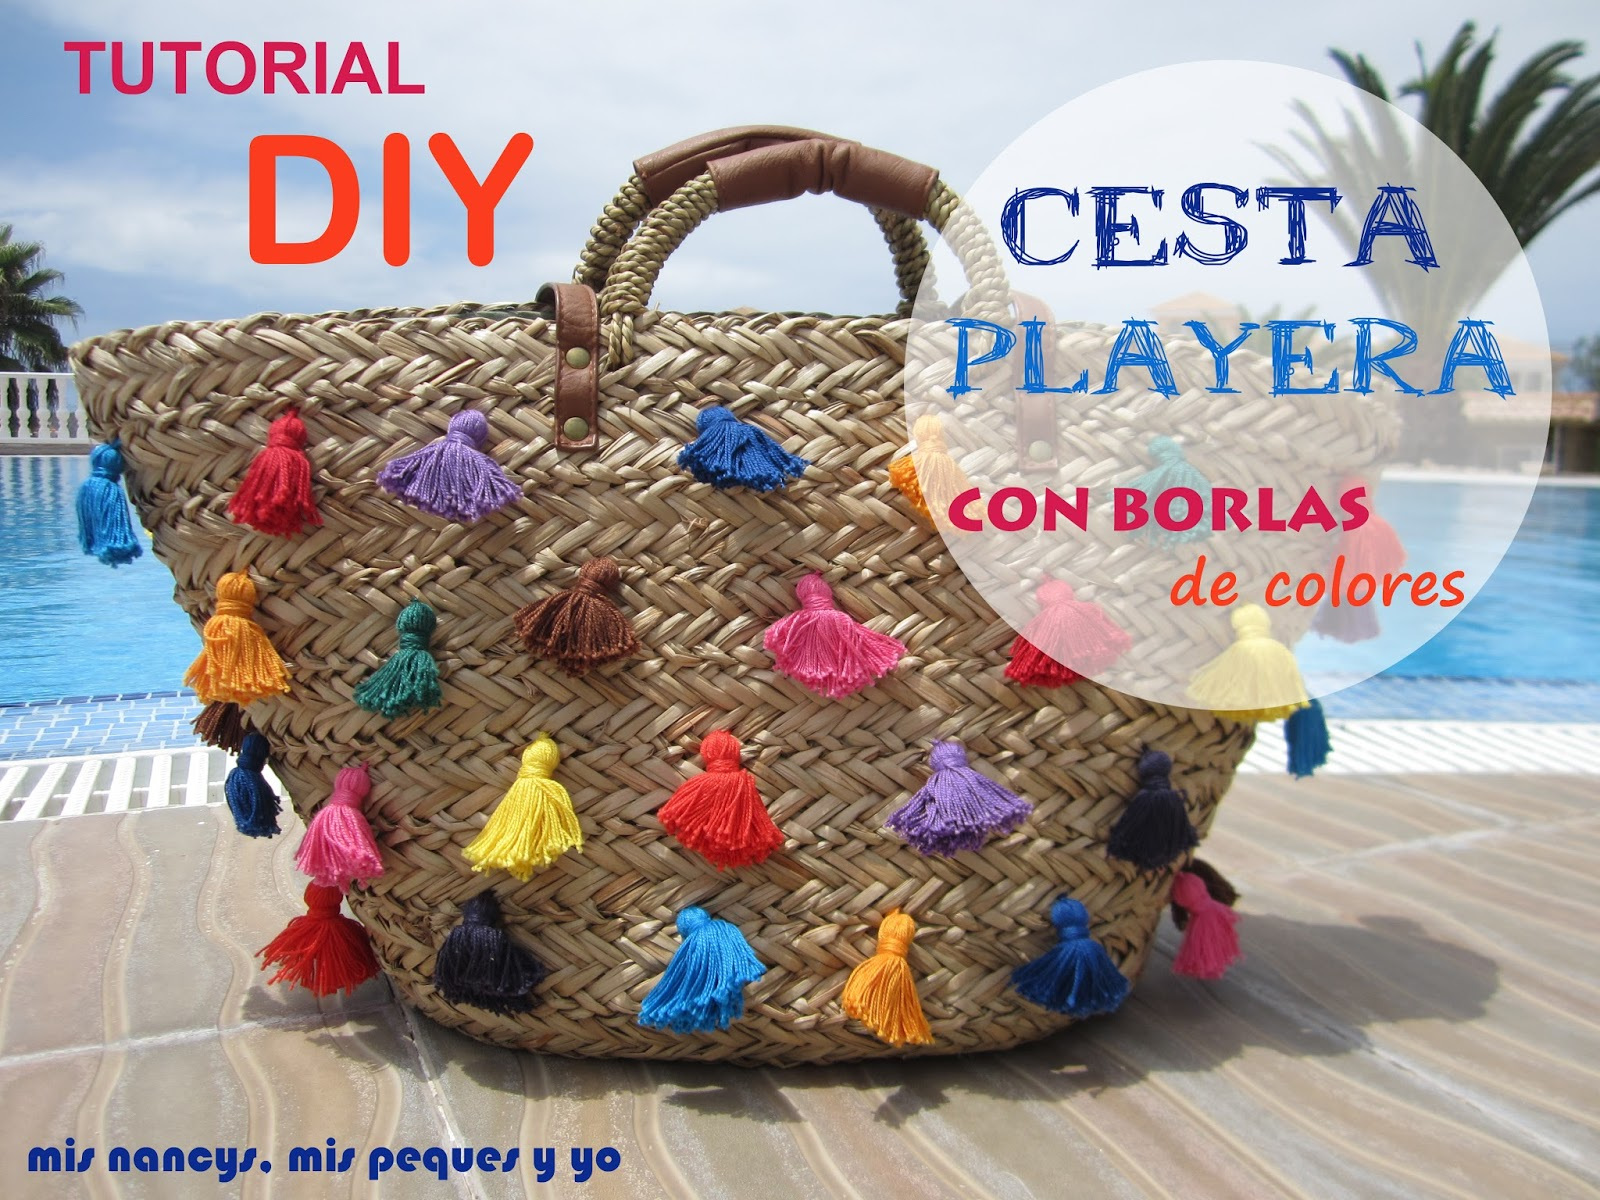 Tutorial Cesta Playera con Borlas de colores